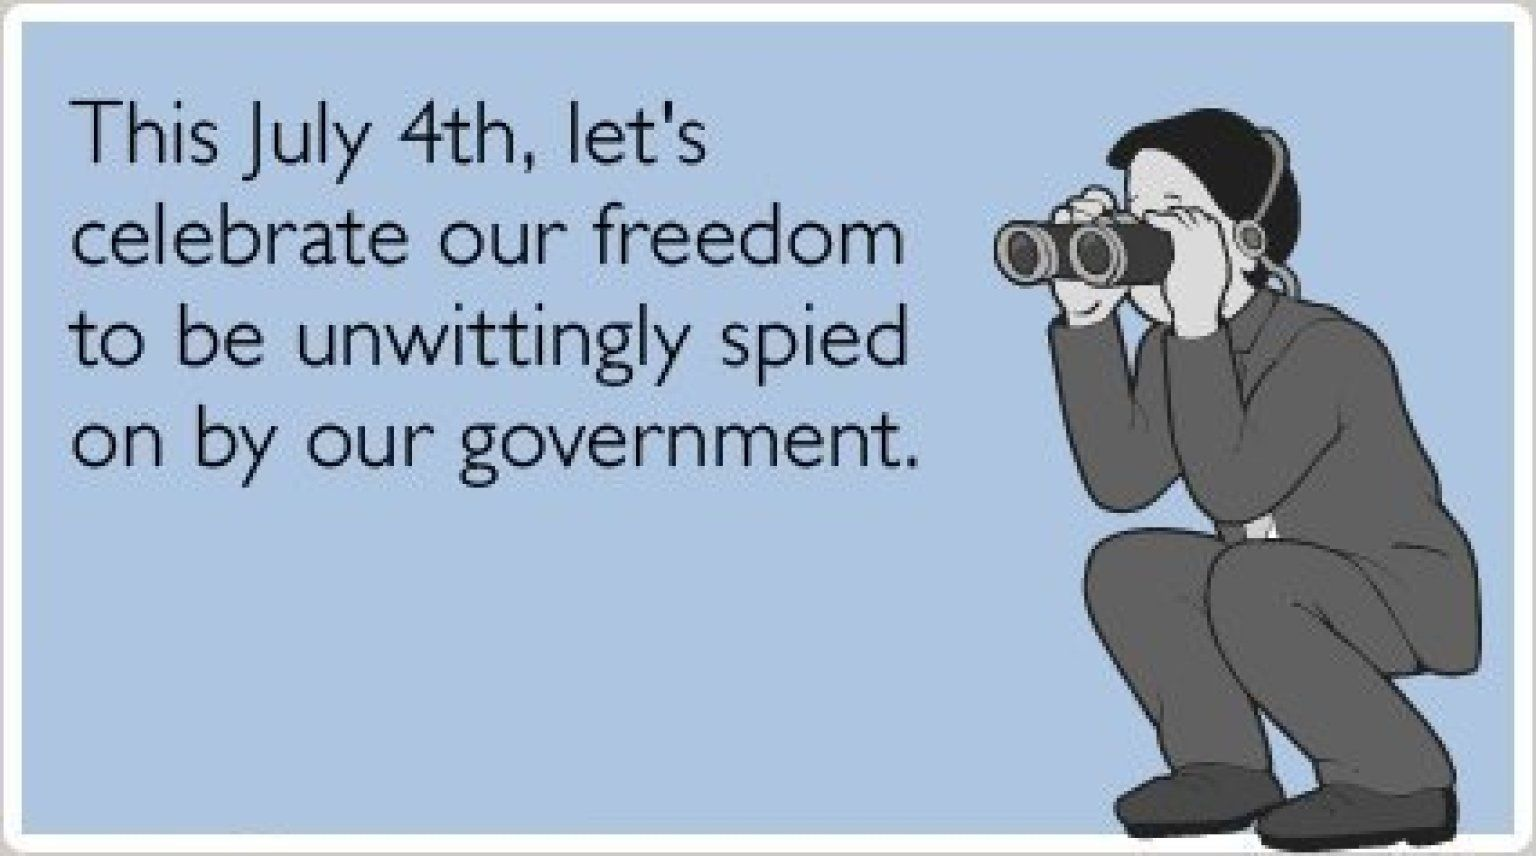 4th Of July Meme 2018 Celebrate Our Freedom 4th Of July Meme 4th Of July Images Happy 4 Of July